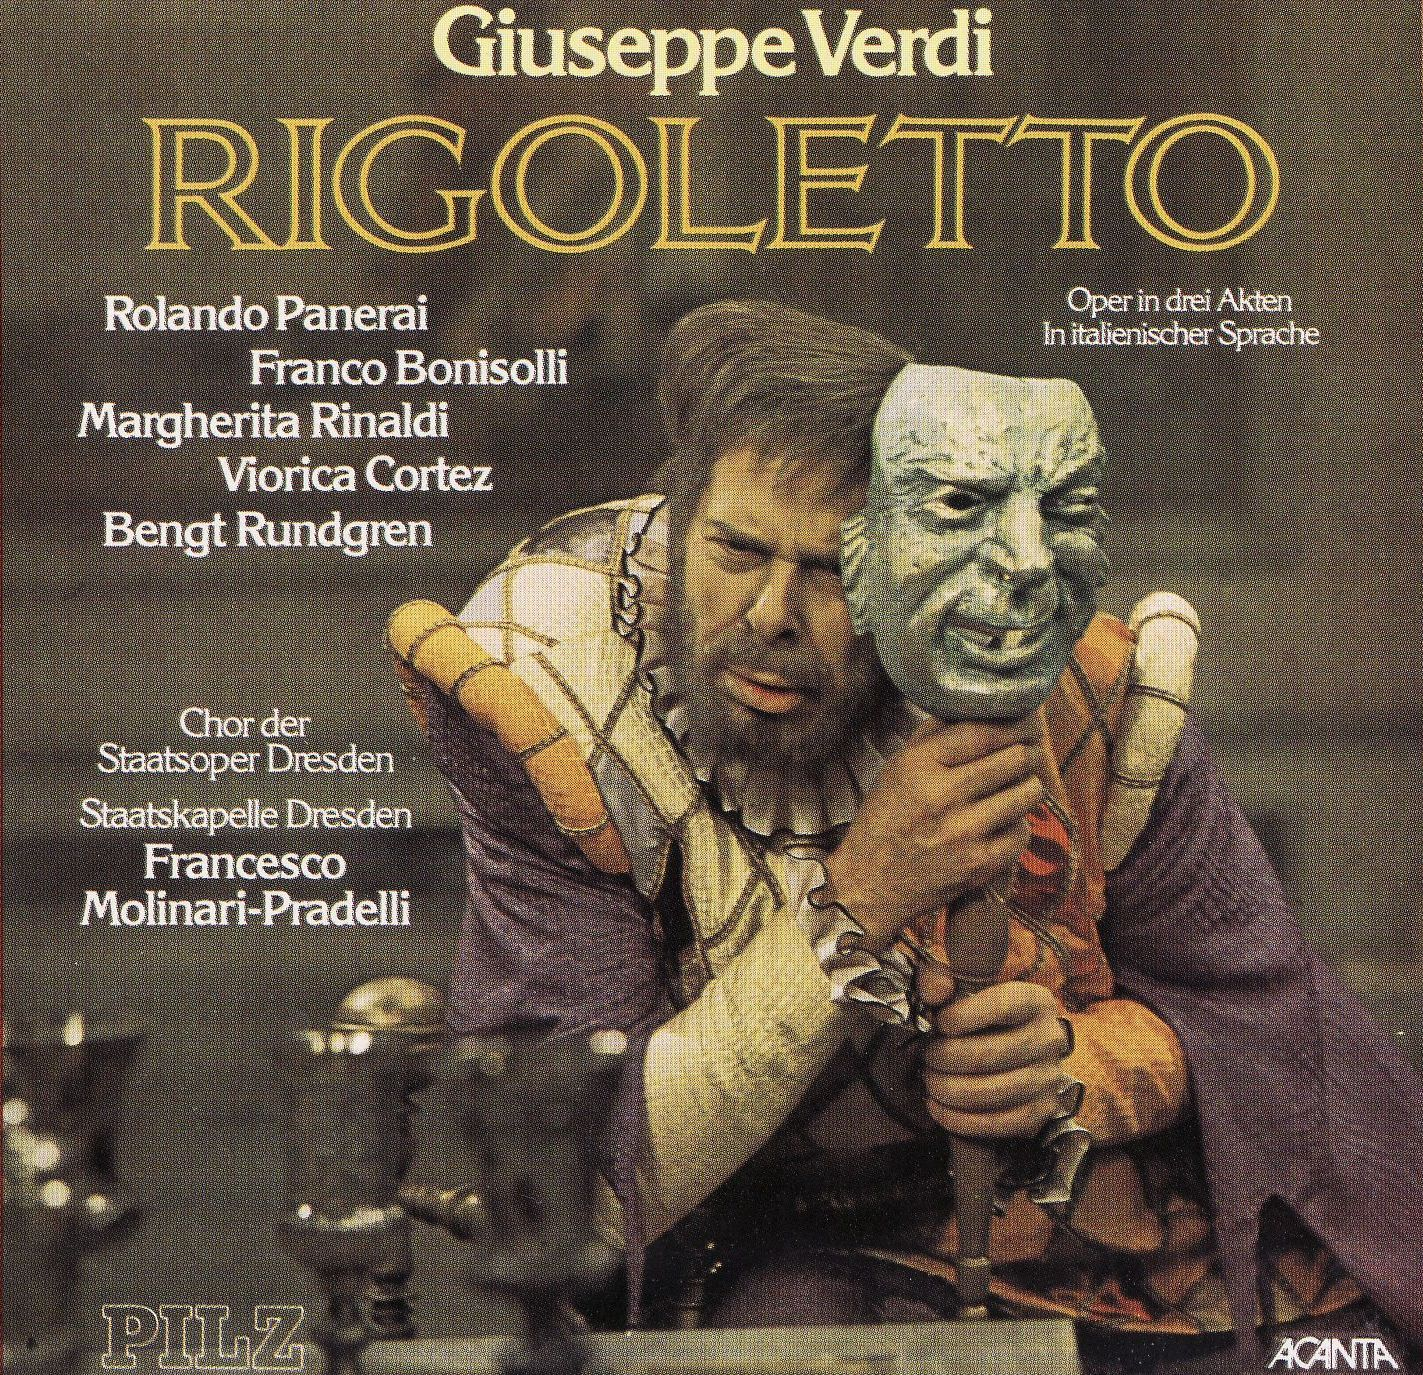 a review of rigoletto an opera by giuseppe verdi Rigoletto by giuseppe verdi at the san diego civic theatre the lecherous duke of mantua seduces wives and daughters while his hunchbacked jester, rigoletto, adds insult to injury by ridiculing their husbands and fathers.